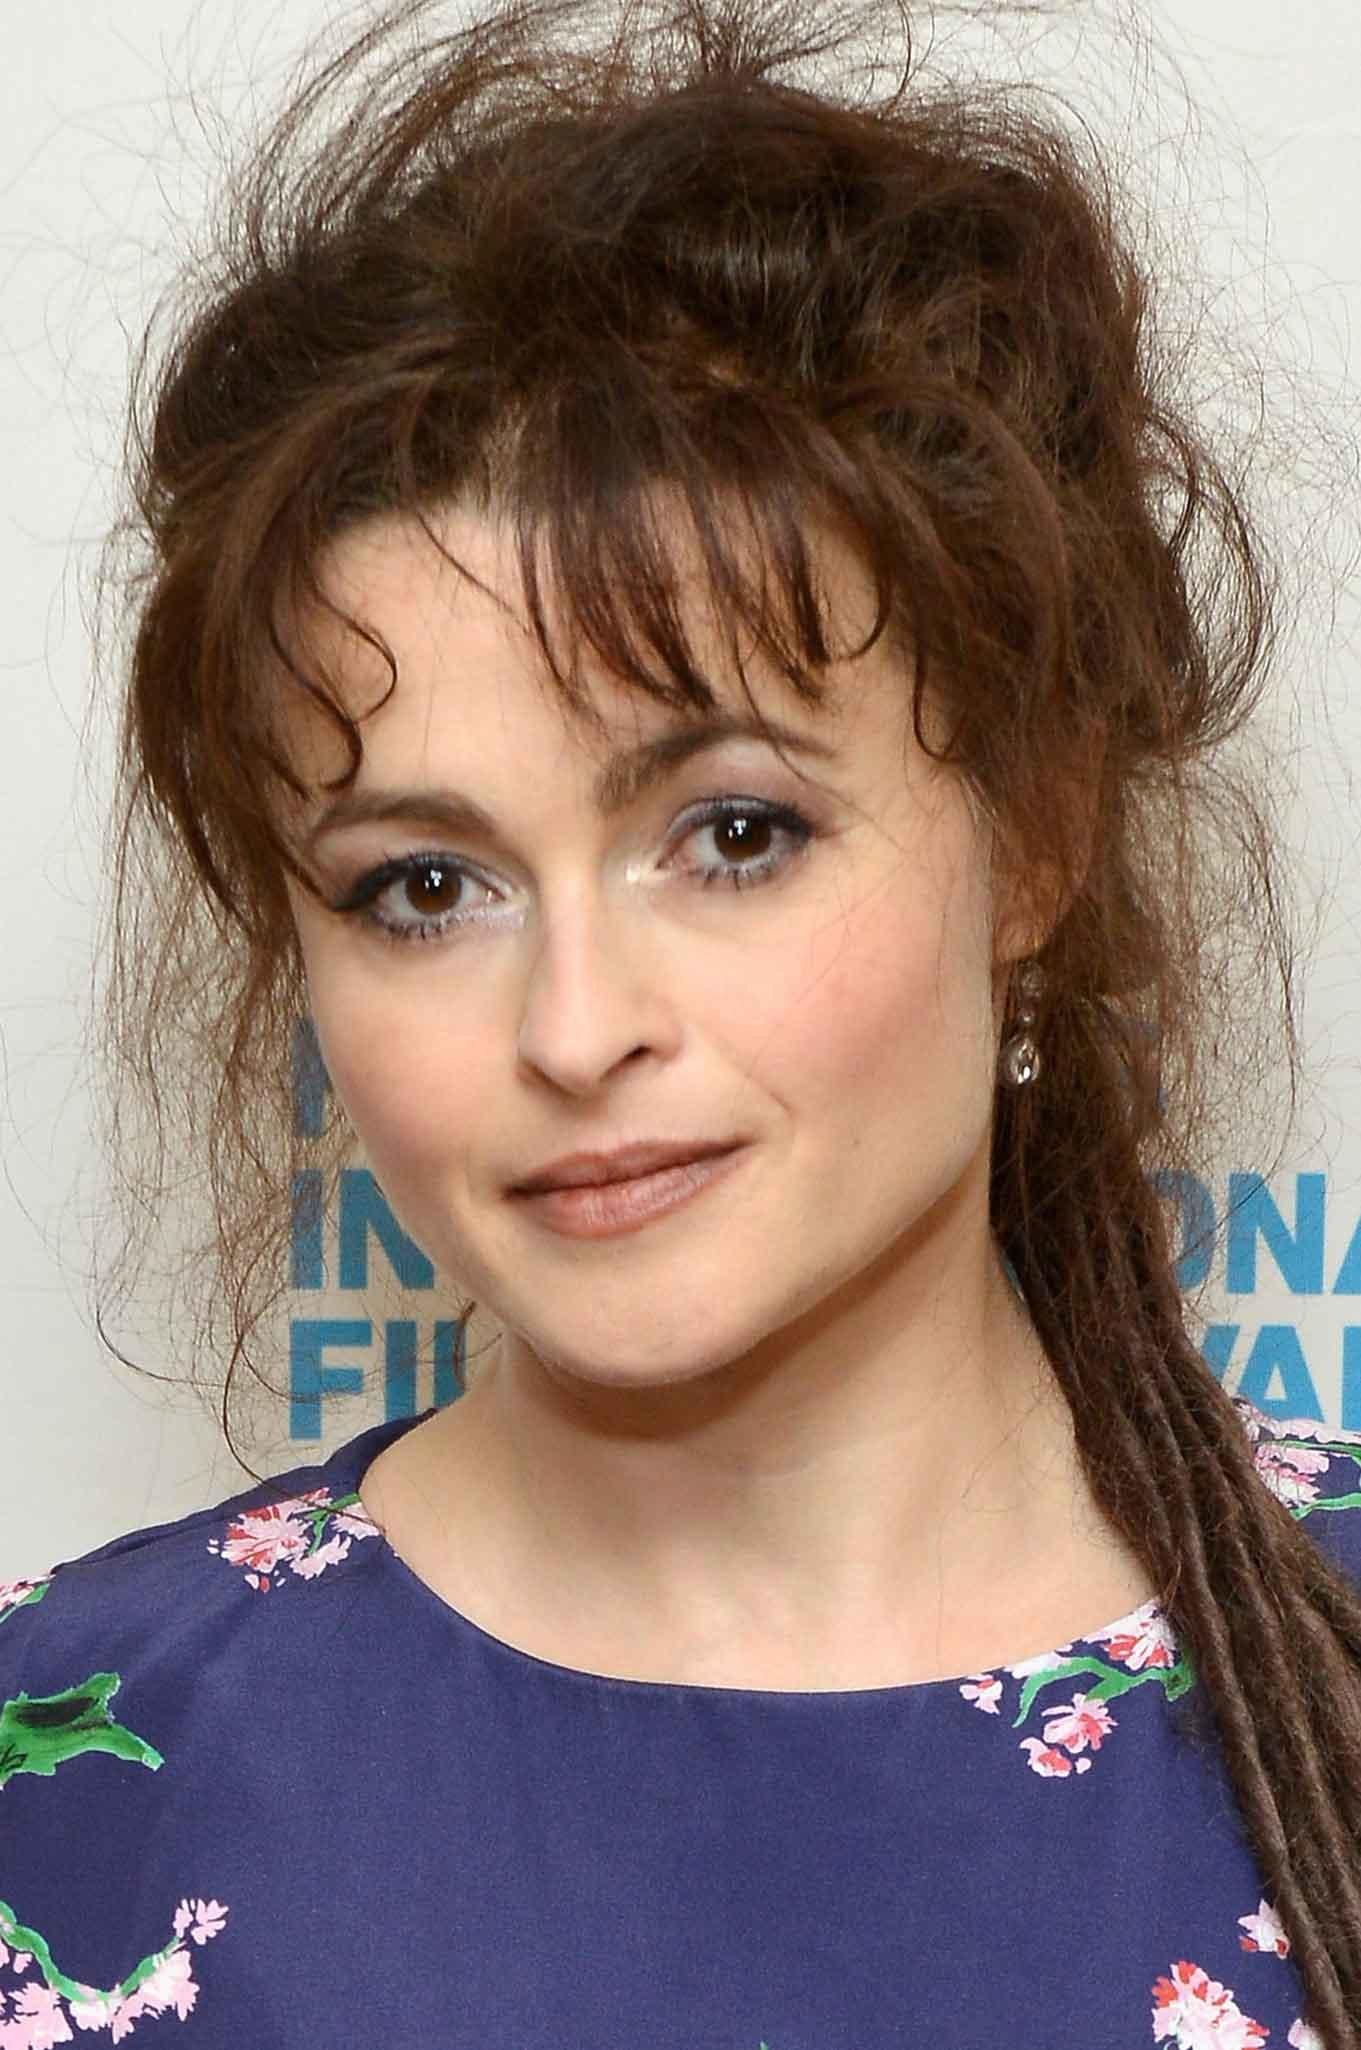 Can helena bonham carter